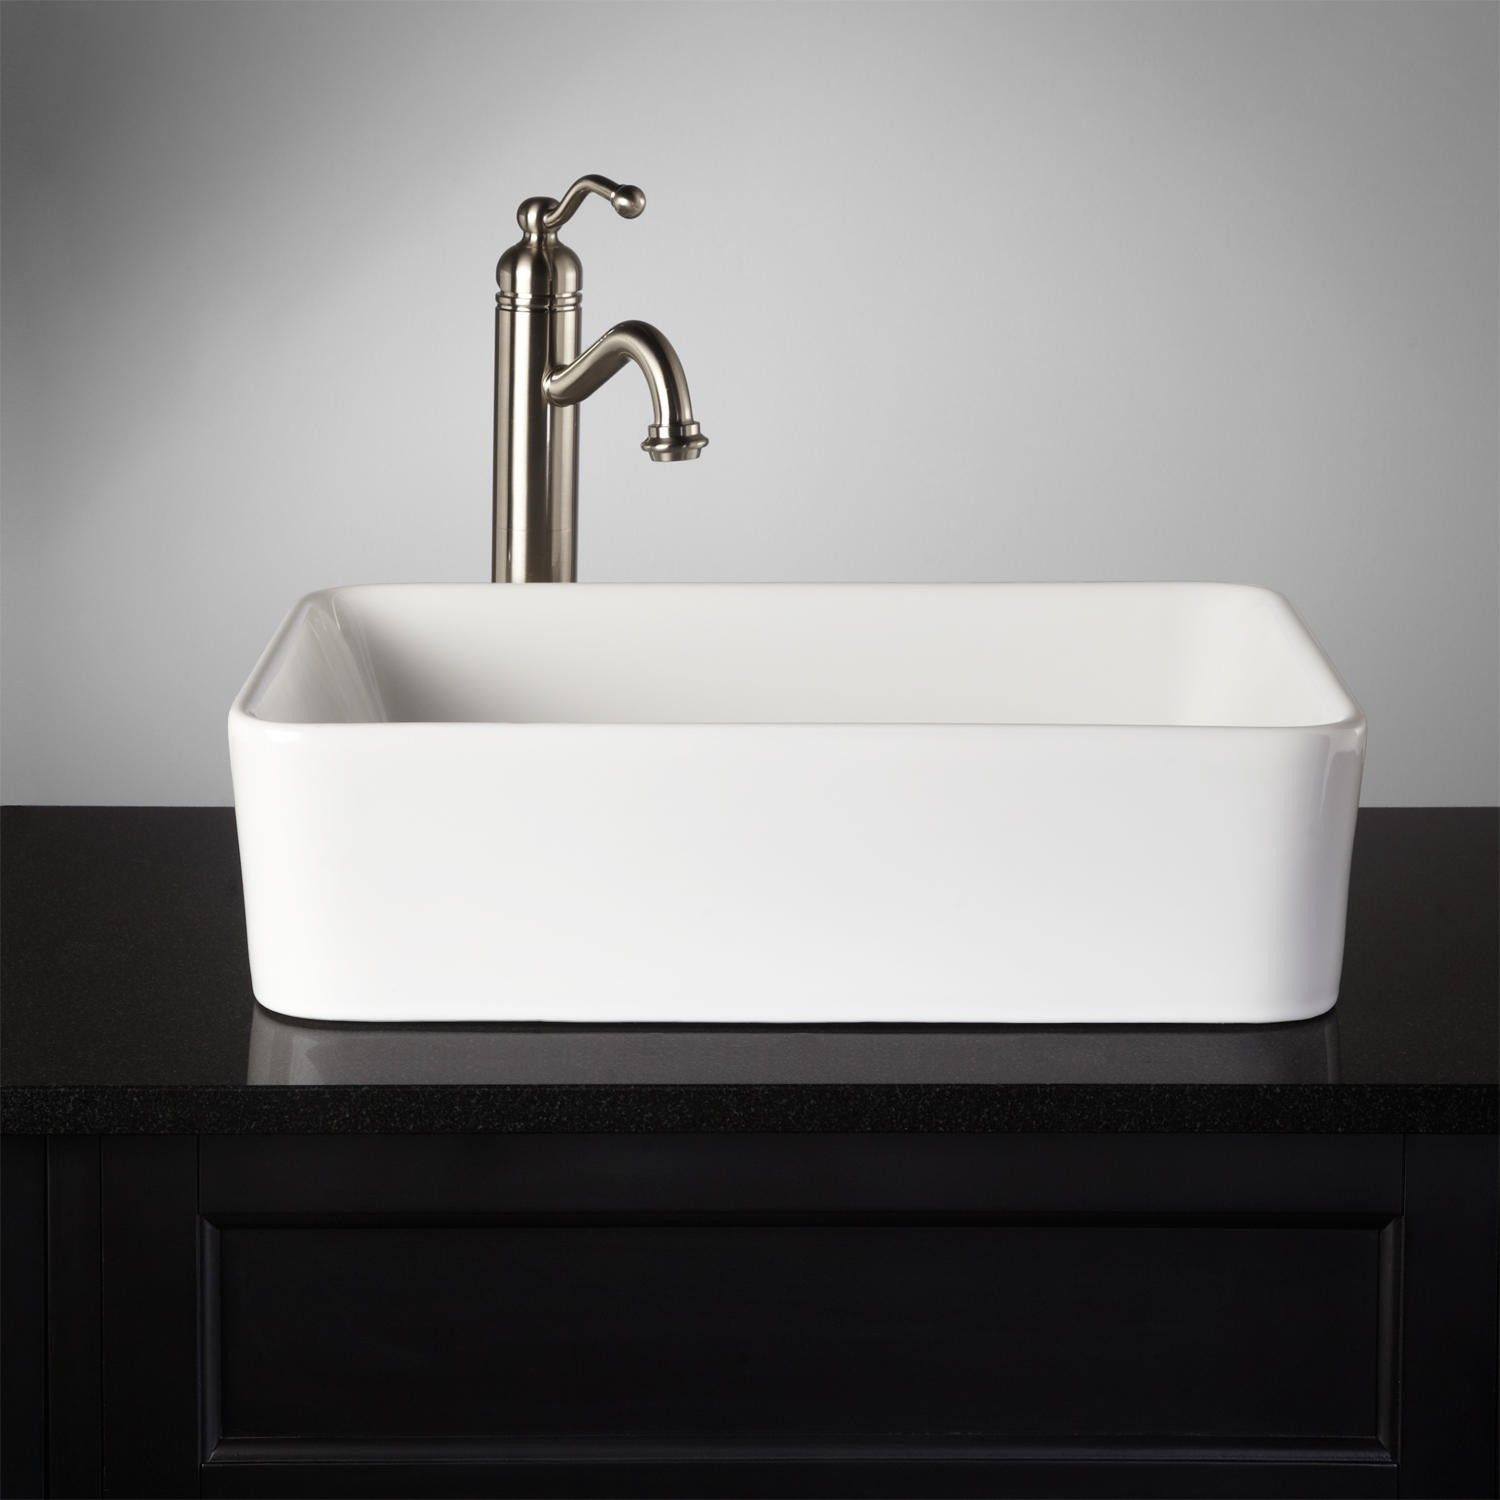 ideas teak roeding sinks light vanity bathroom sink best new photo vanities gray vessel